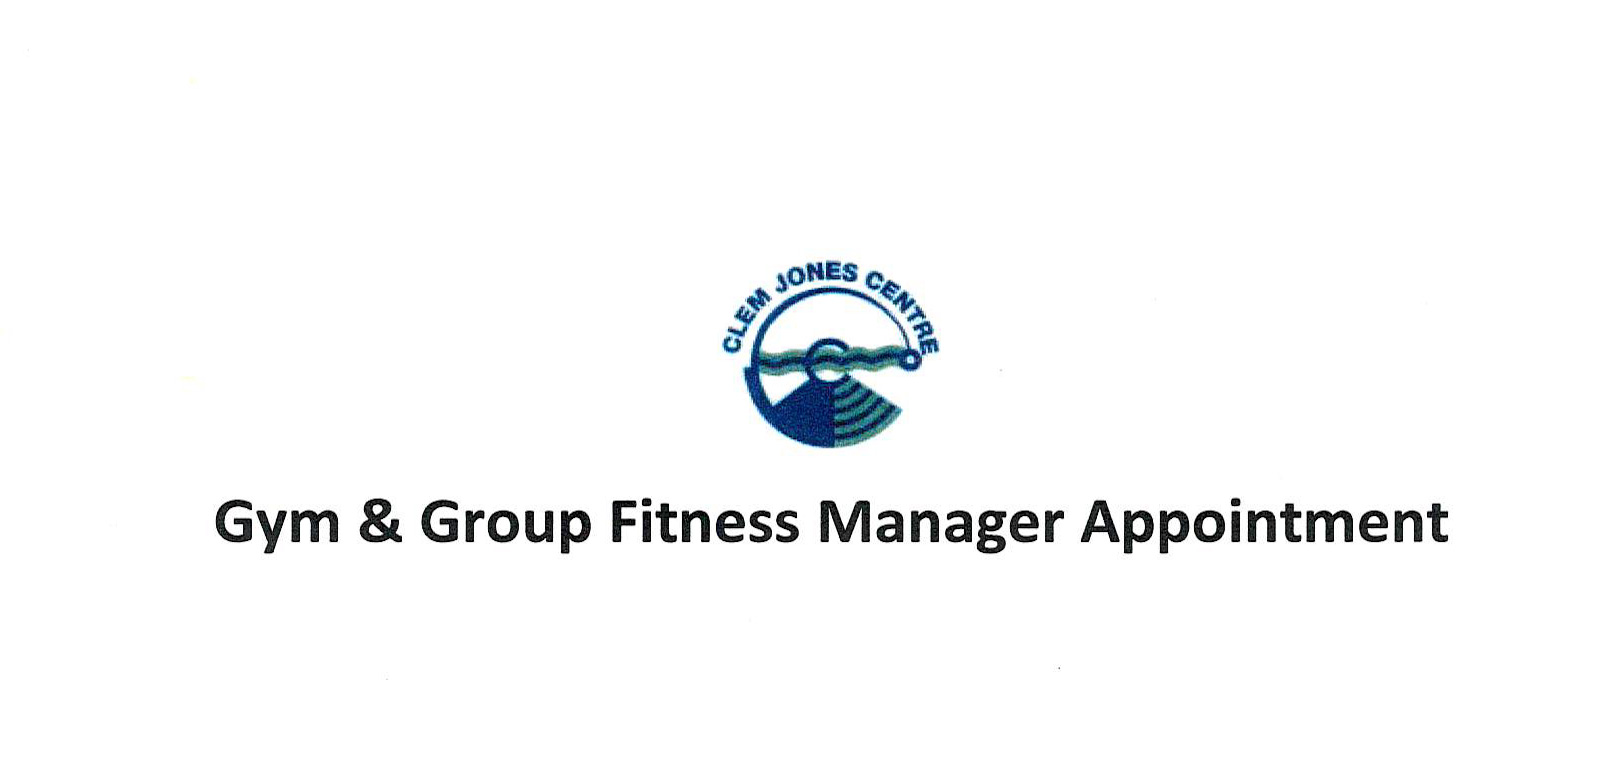 Gym & Group Fitness Manager